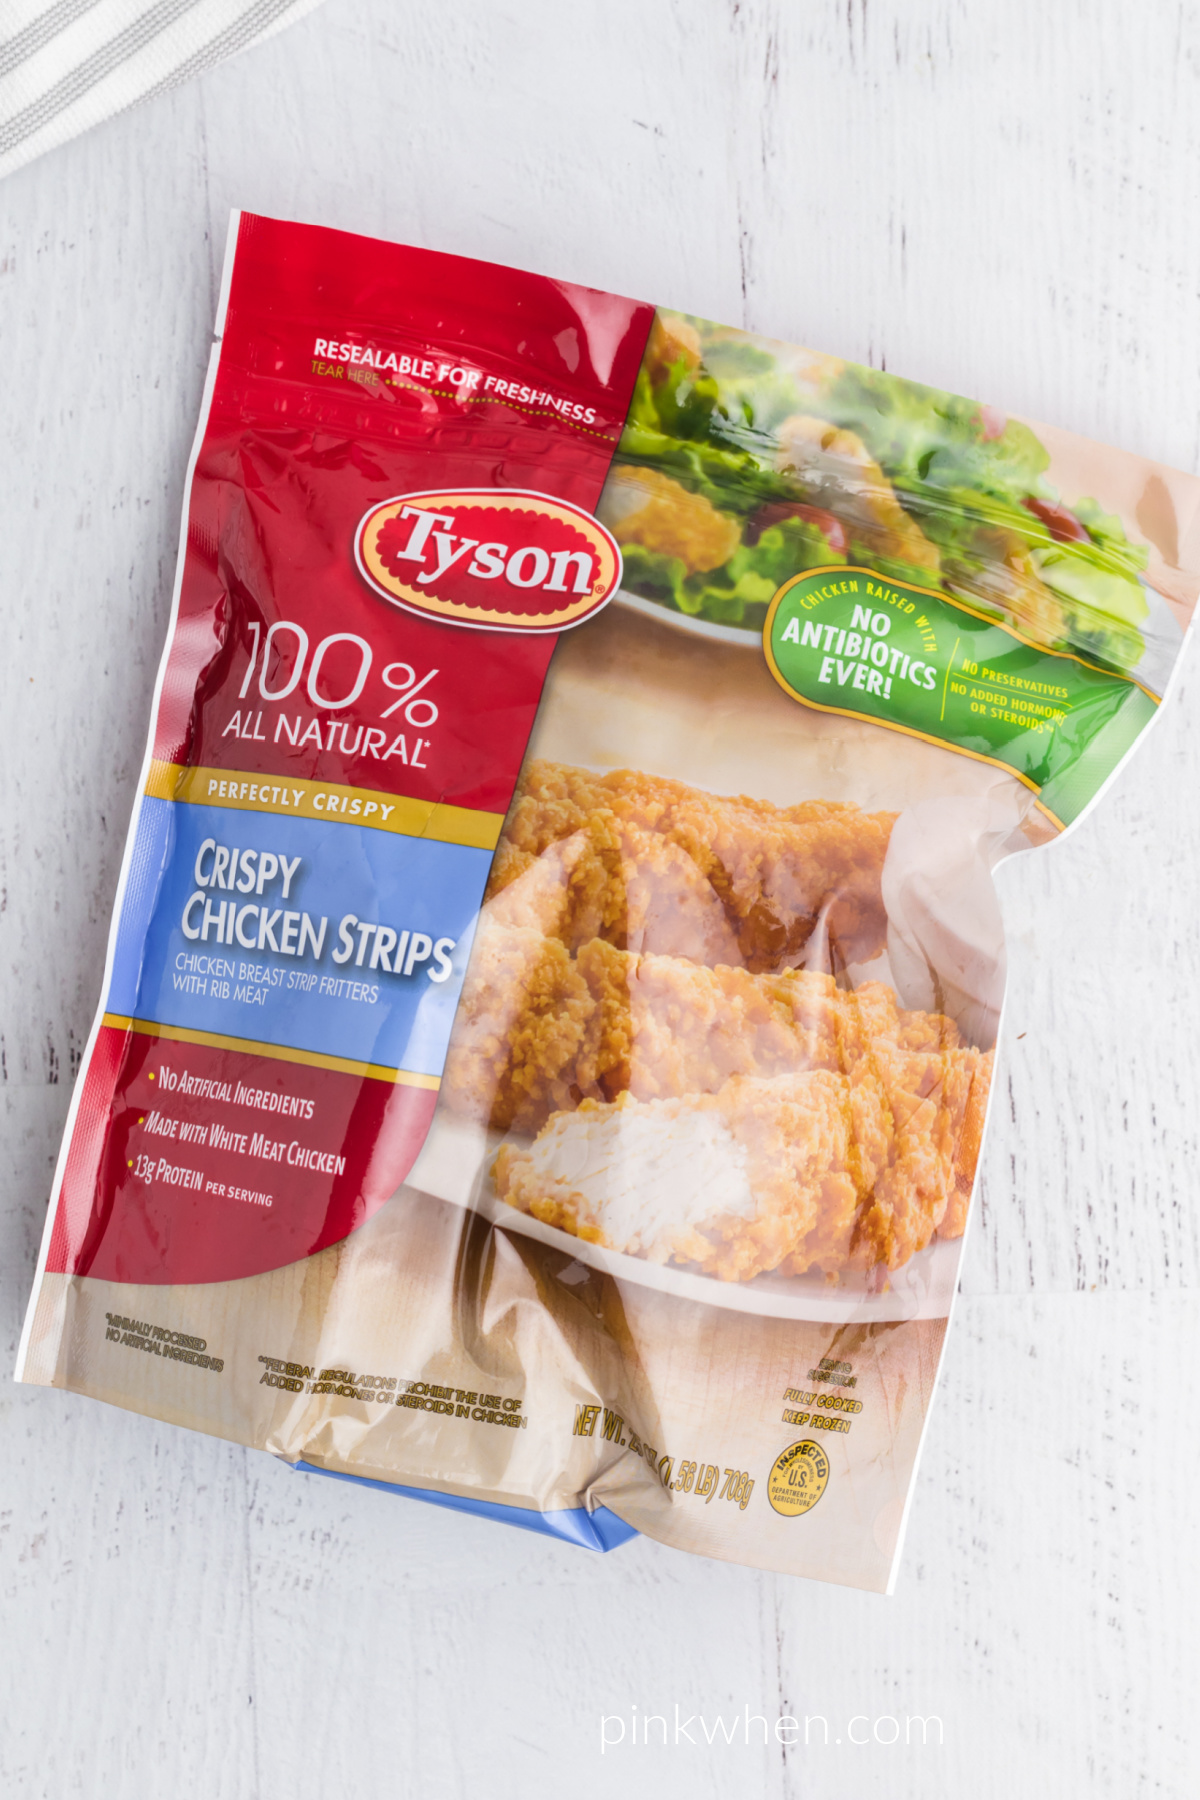 Package of Tyson frozen chicken strips on a white table.